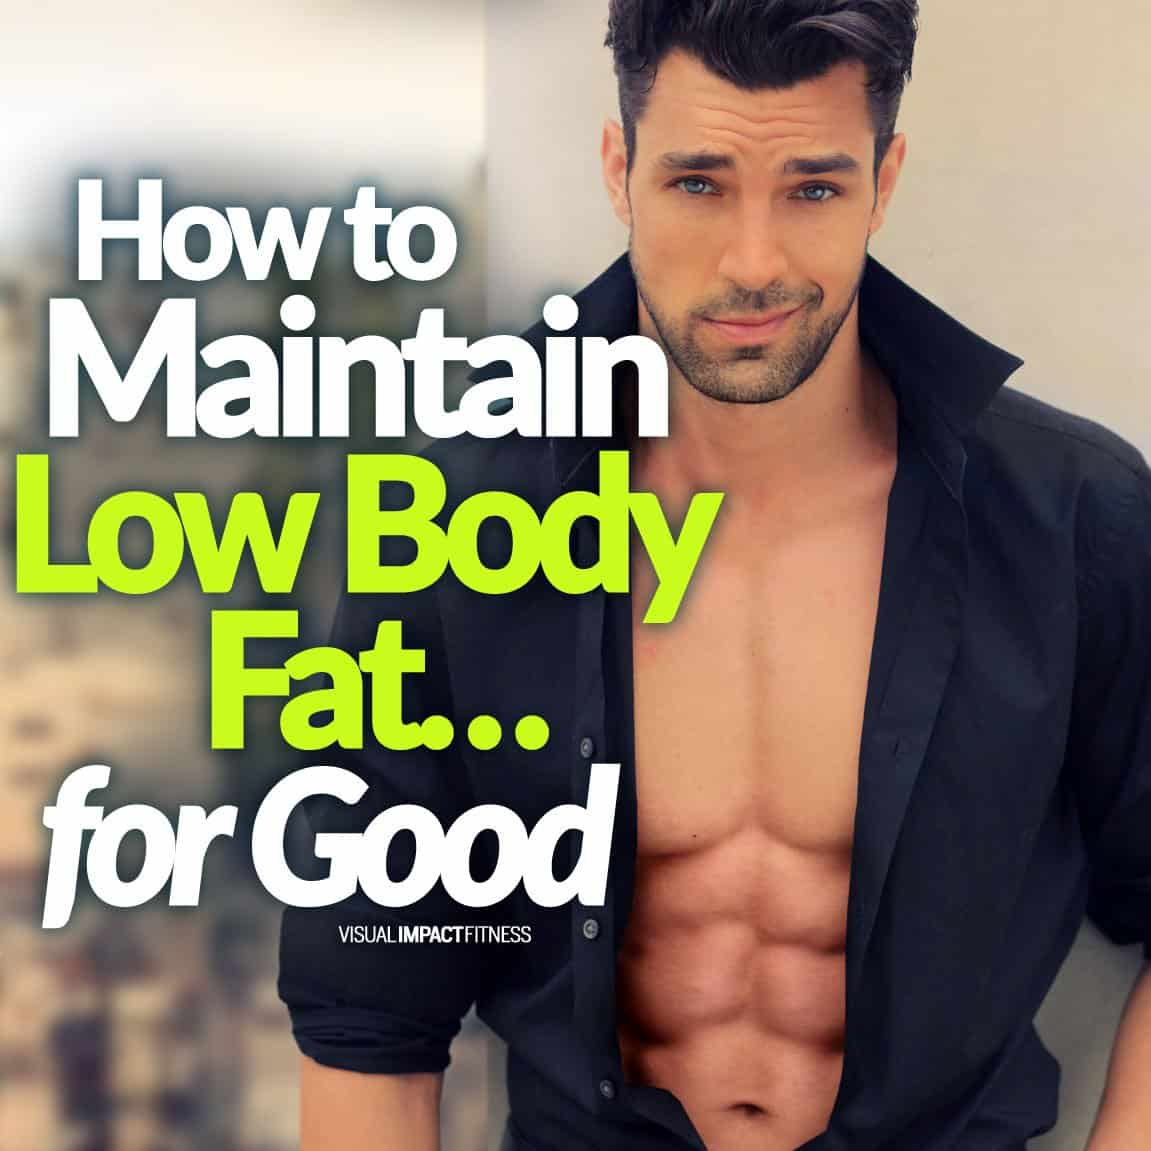 How to Maintain Low Body Fat